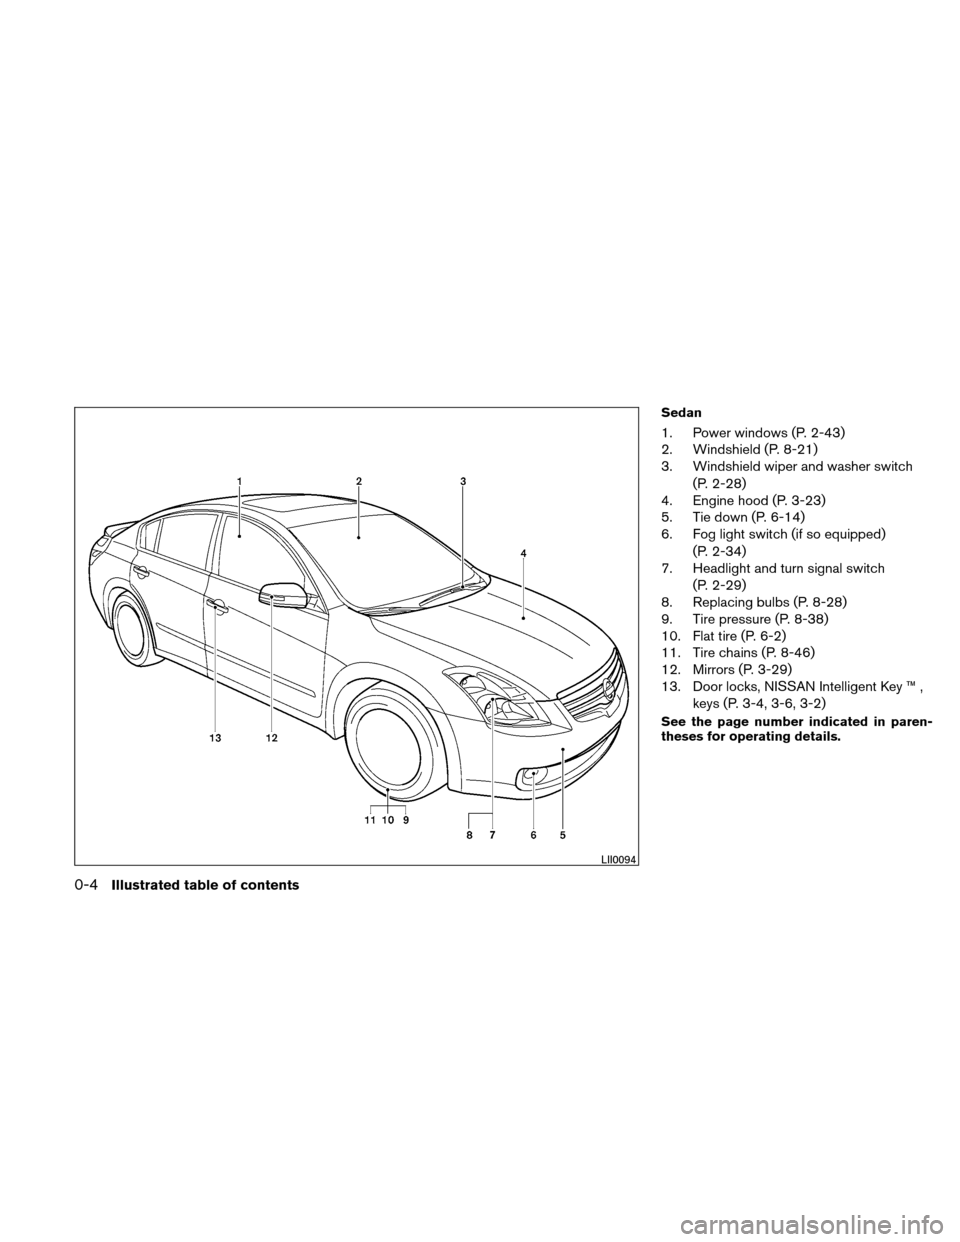 NISSAN ALTIMA COUPE 2011 D32 / 4.G Owners Manual, Page 11